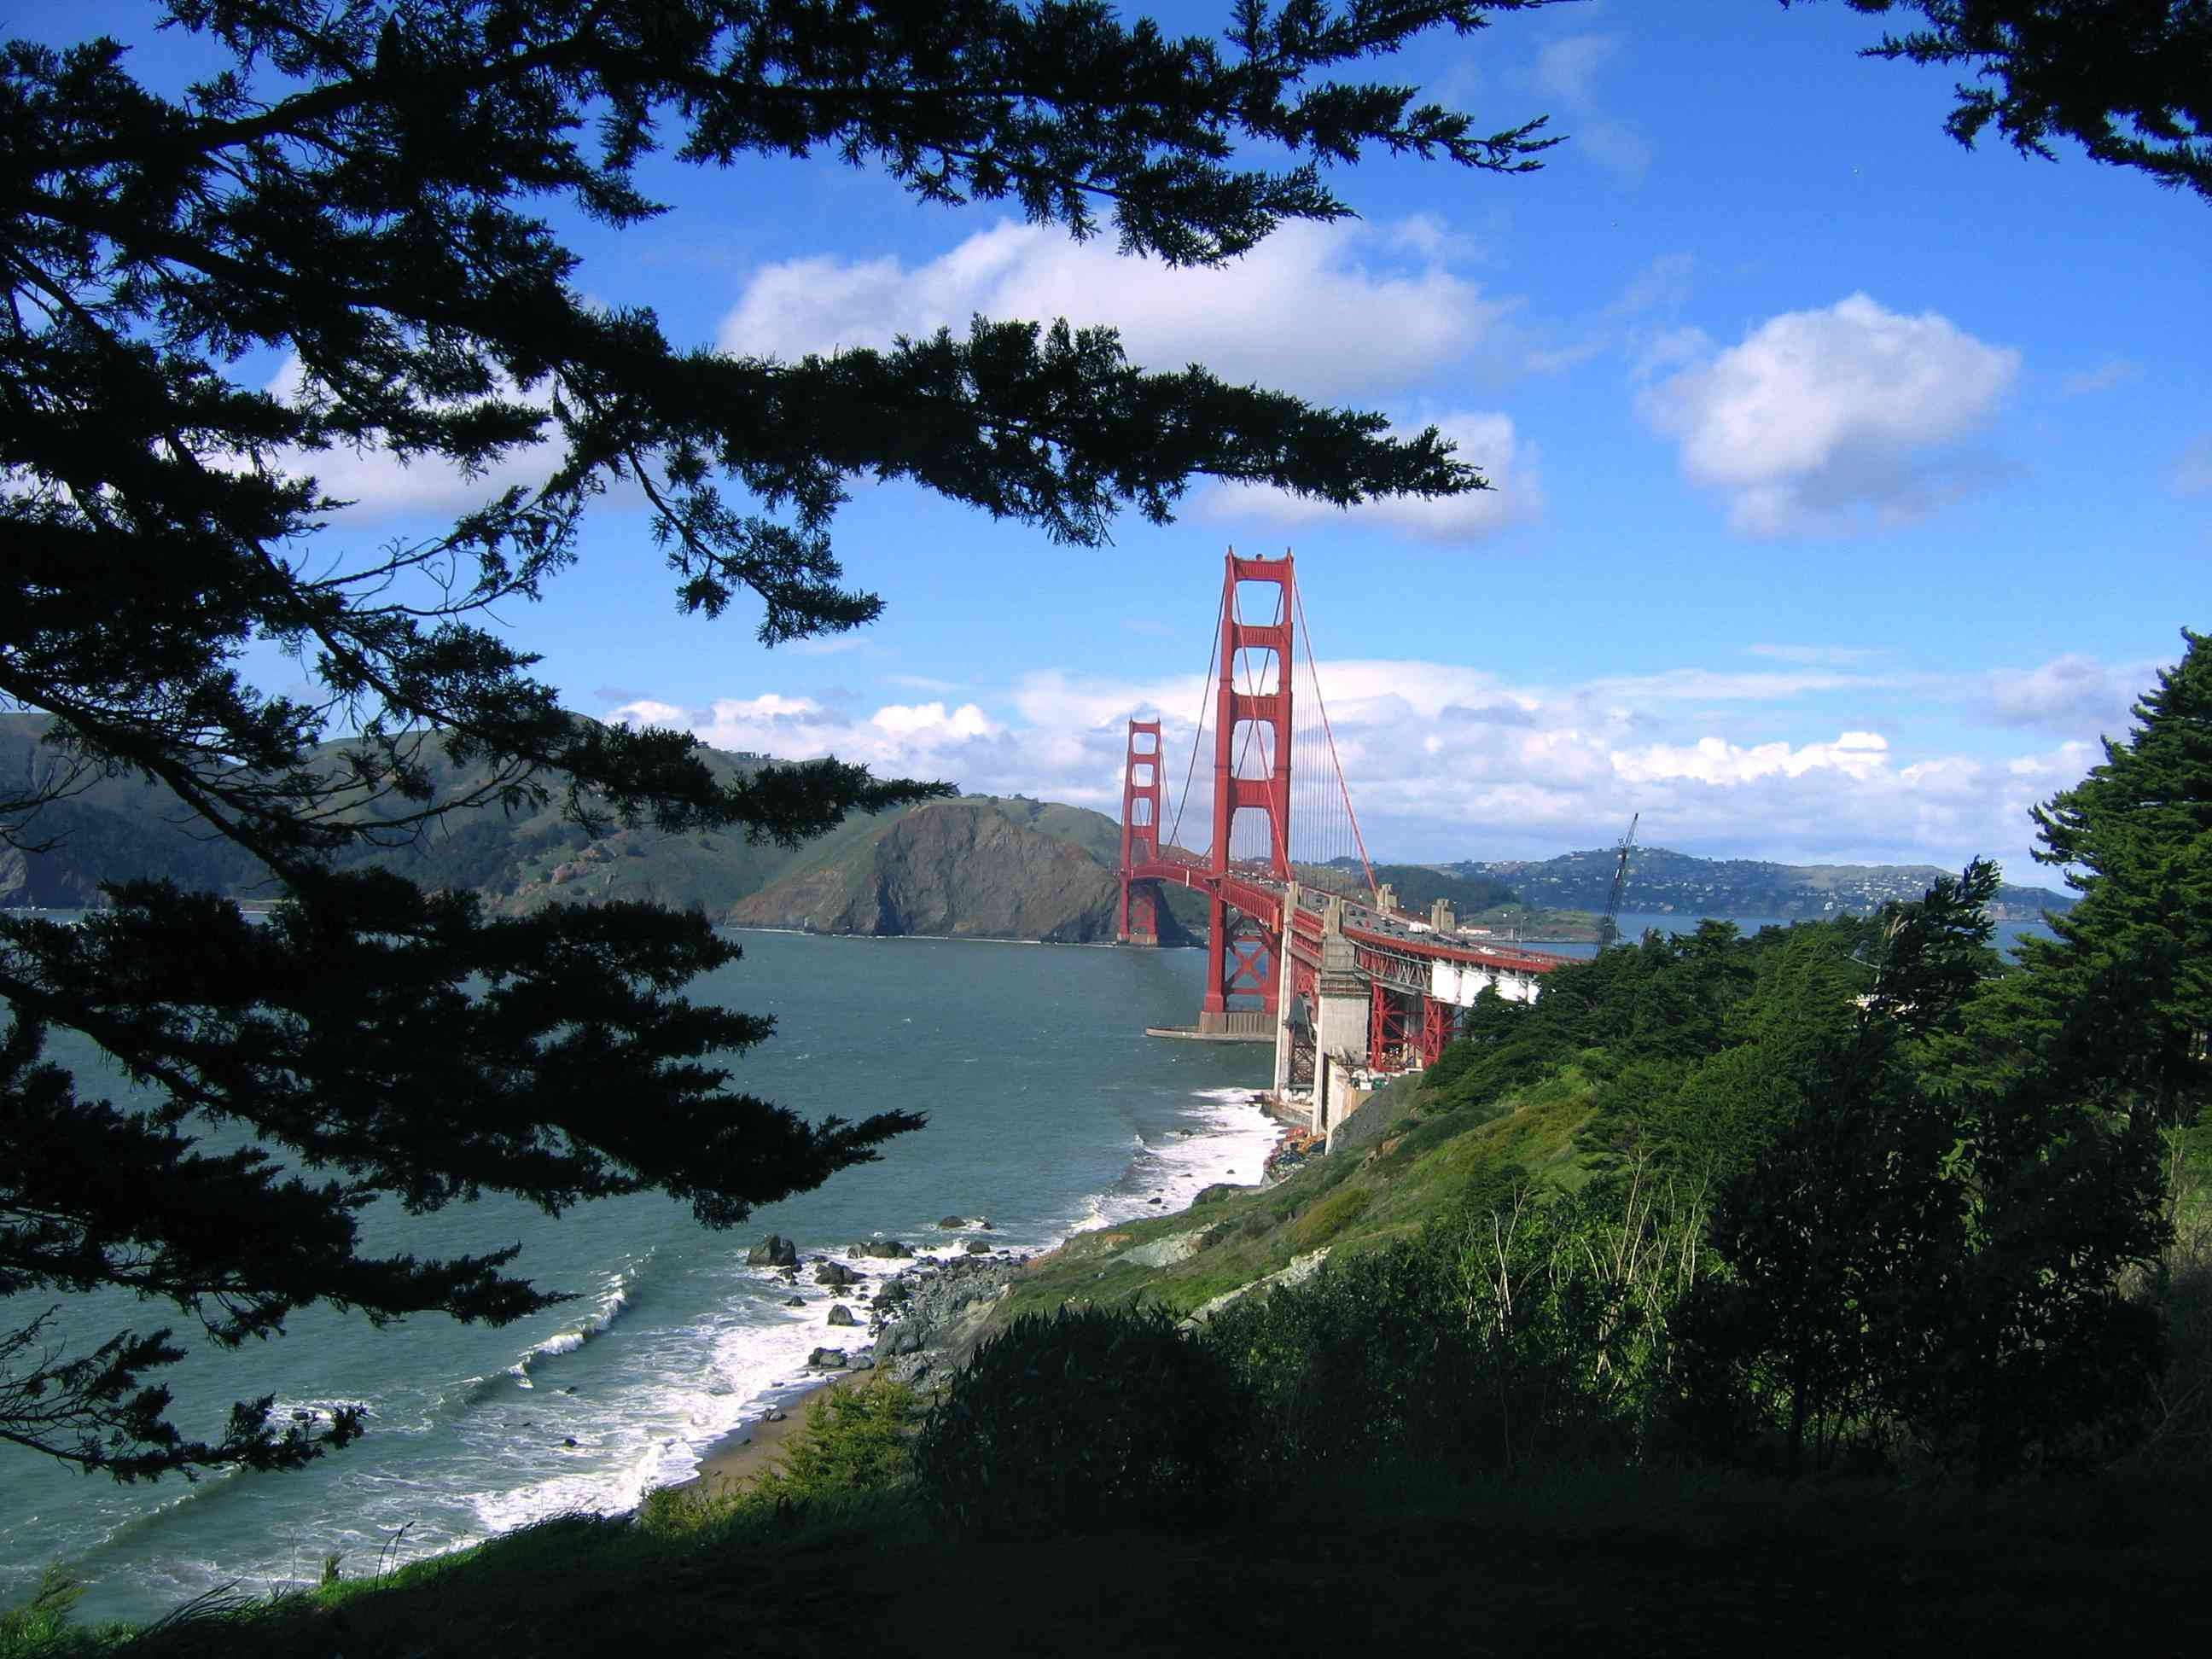 The Golden Gate Bridge is photographed from the Coastal Trail, part of the Lands End park